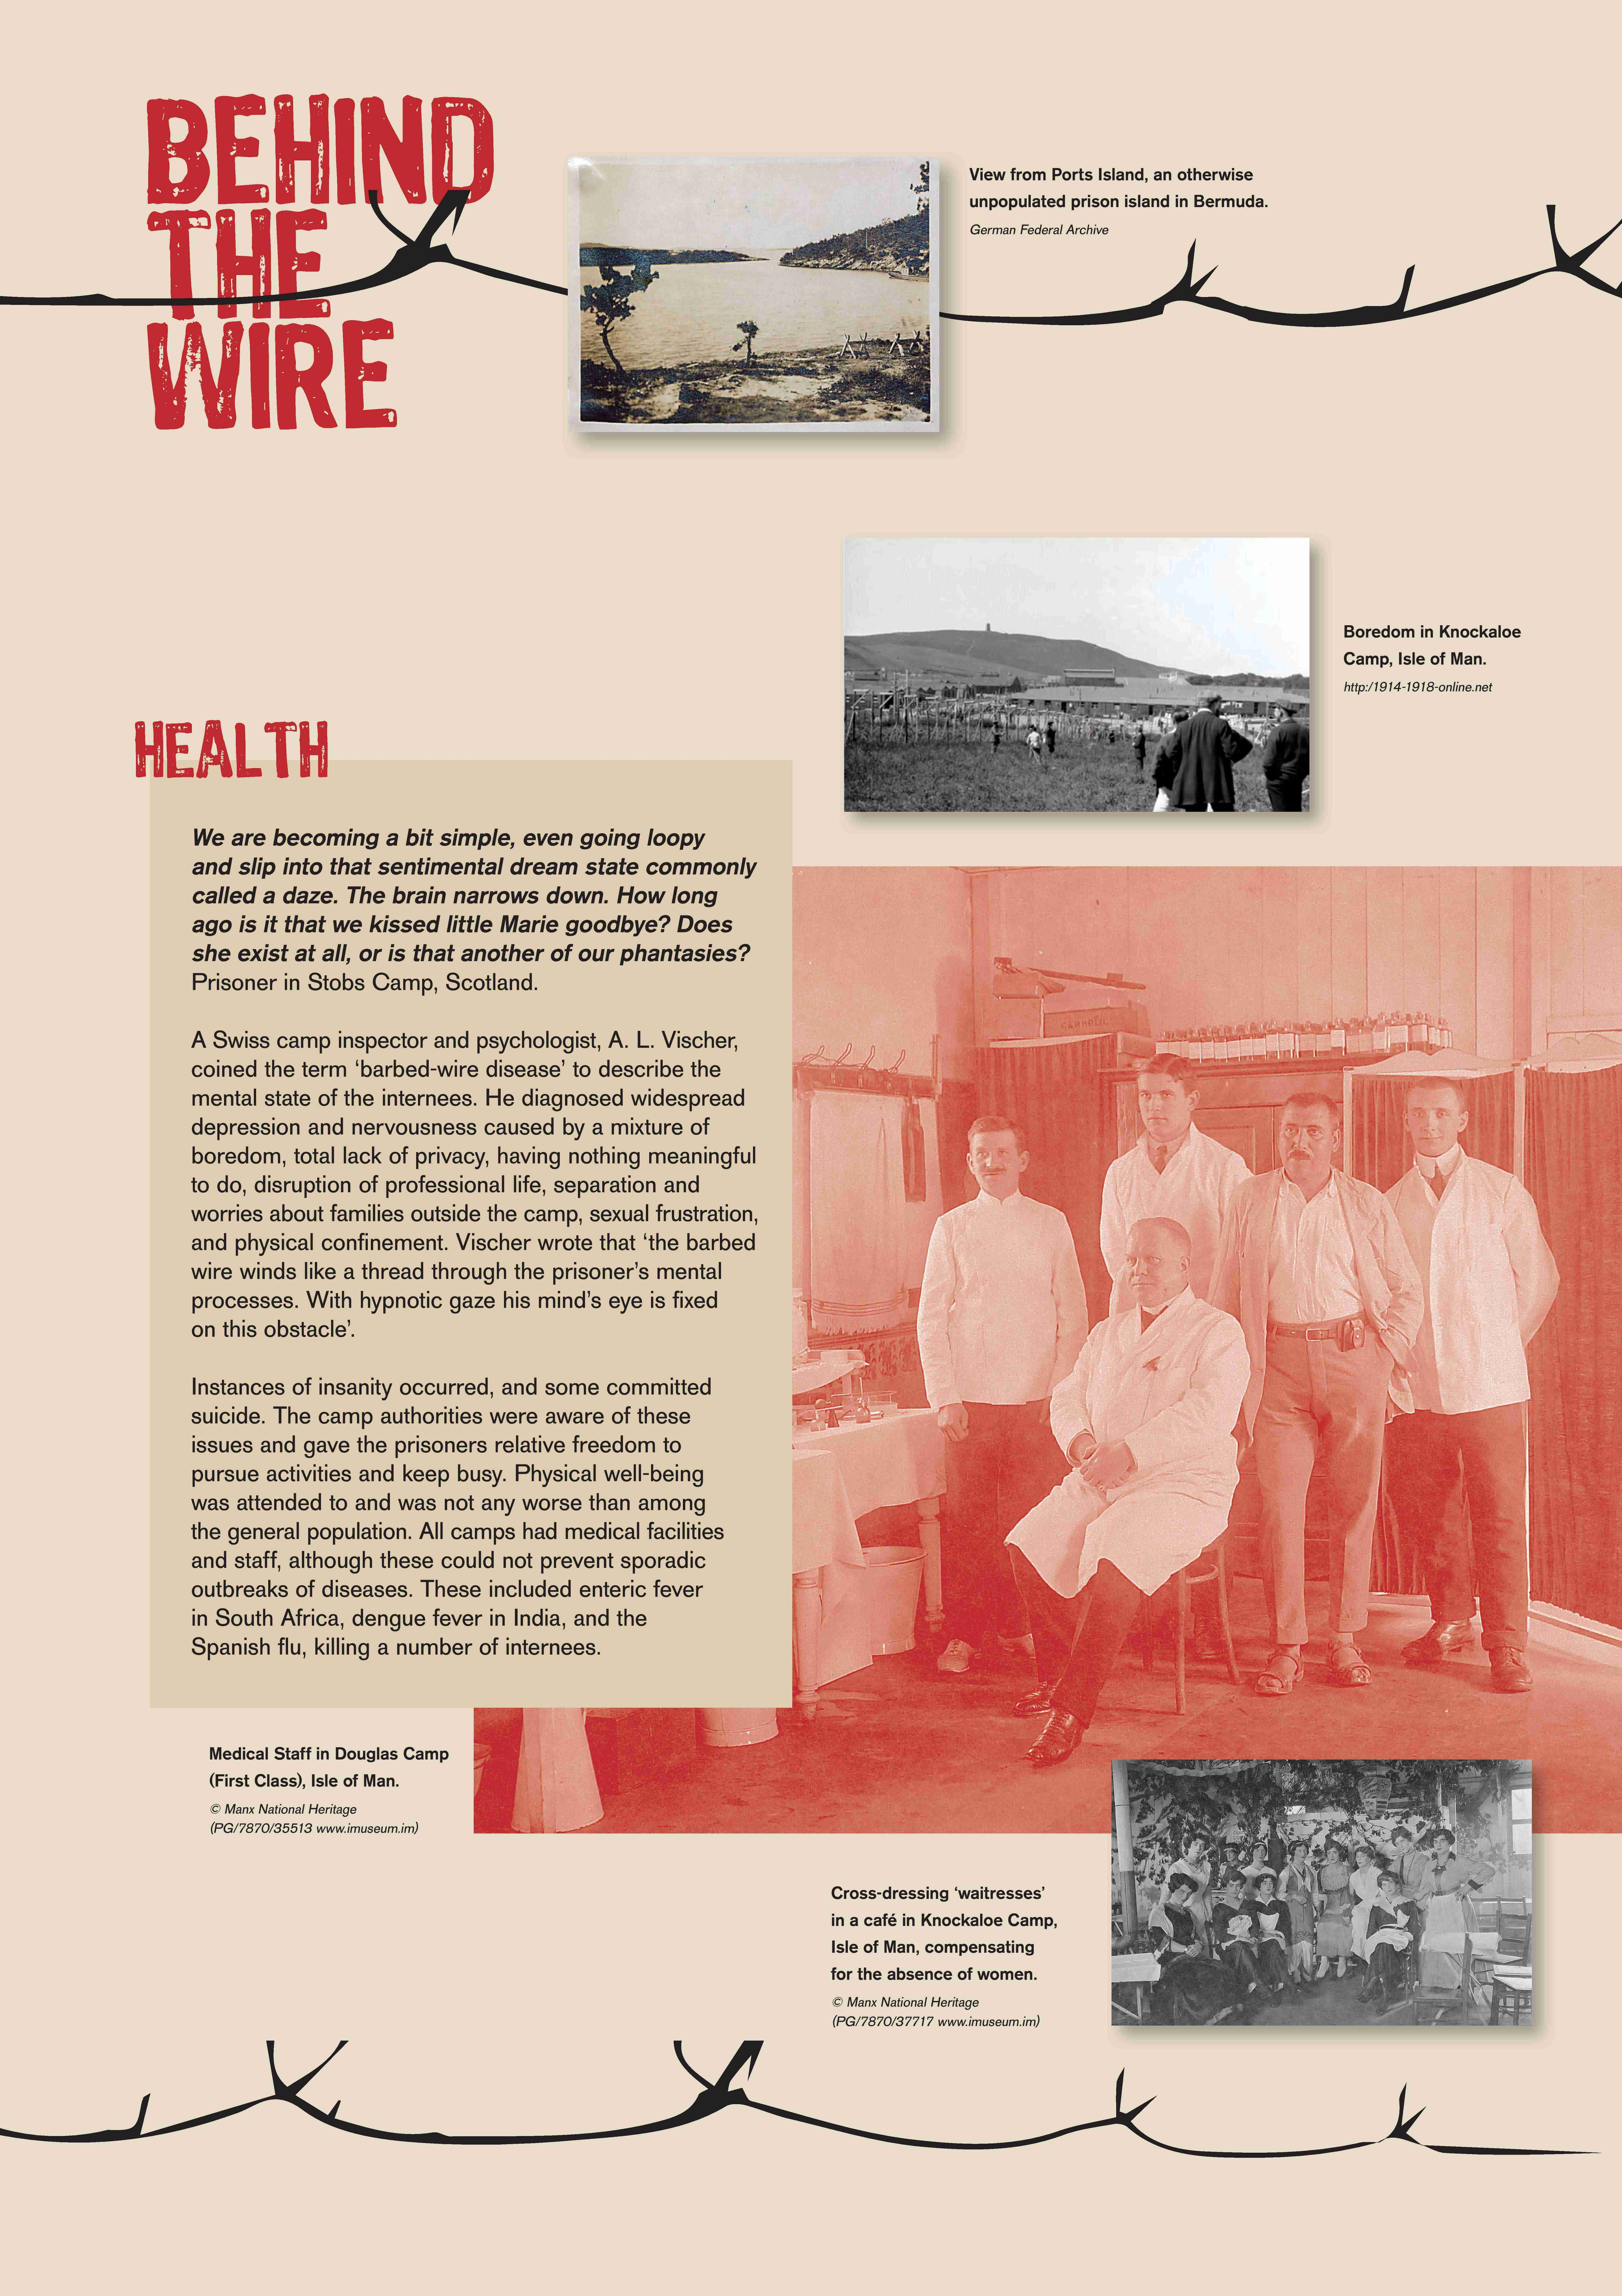 09-Behind the Wire-A1-Exhibition-Health_DIGITAL VERSION-page-001-min-compressed